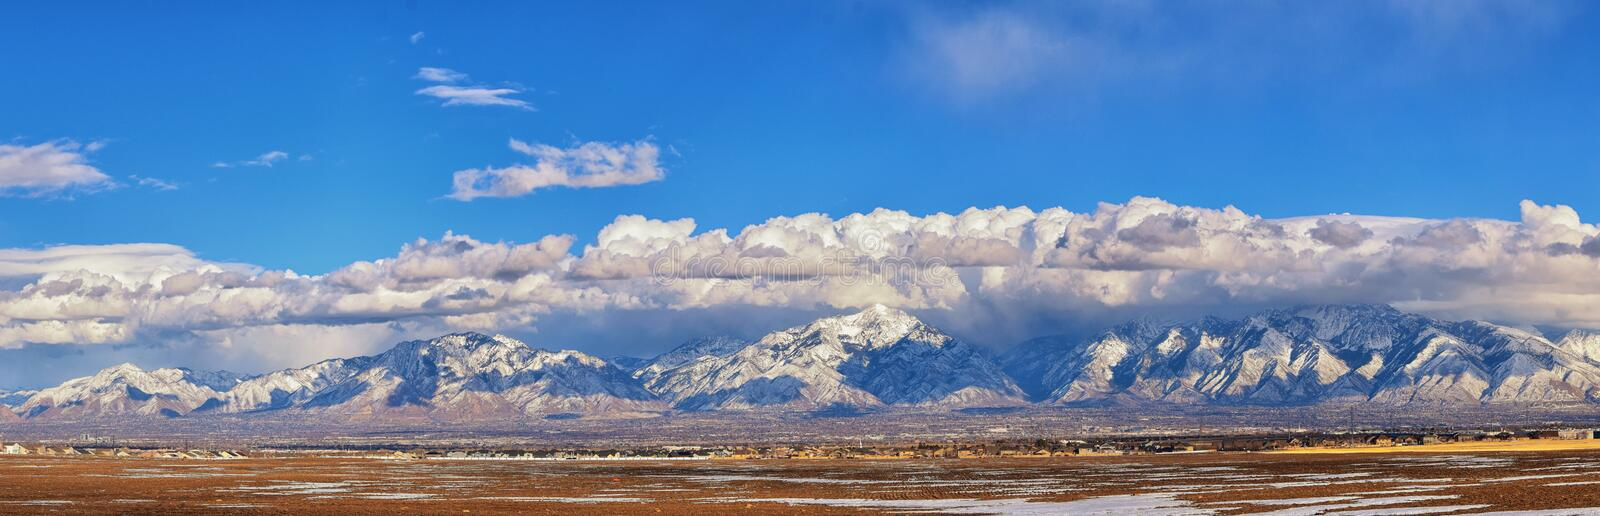 Winter-Panoramablick des Schnees bedeckte Wasatch Front Rocky Mountains, Great- Salt Laketal und Cloudscape von Bacchus Highway m stockfoto